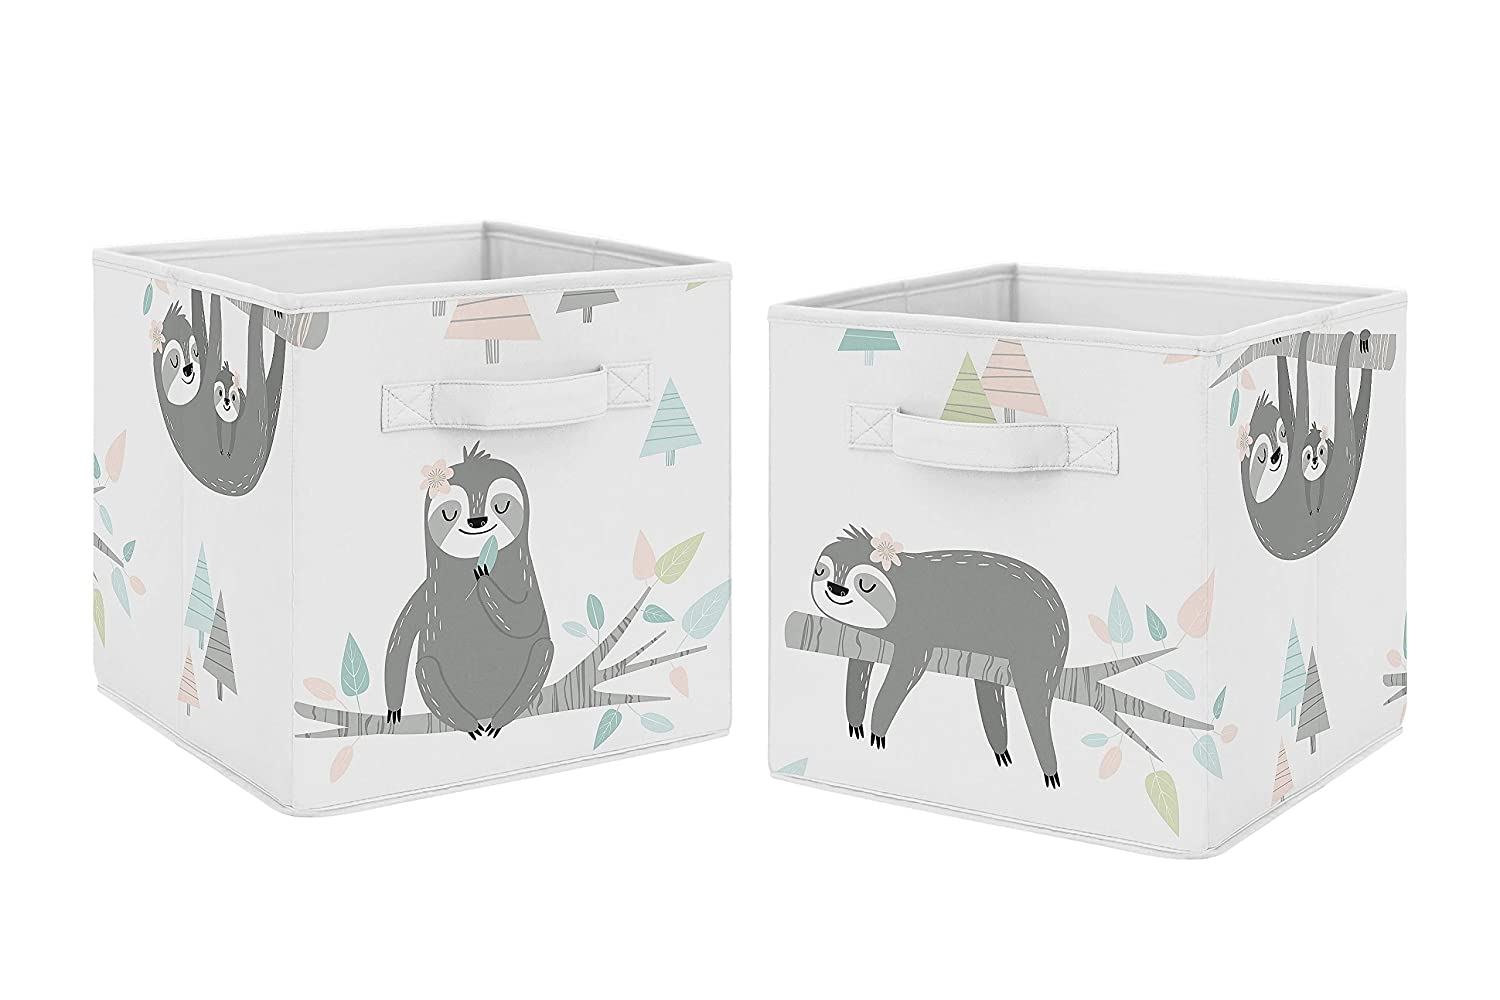 Sweet Jojo Designs Pink and Grey Jungle Sloth Leaf Foldable Fabric Storage Cube Bins Boxes Organizer Toys Kids Baby Childrens - Set of 2 - Blush, Turquoise, Gray, Green Tropical Botanical Rainforest